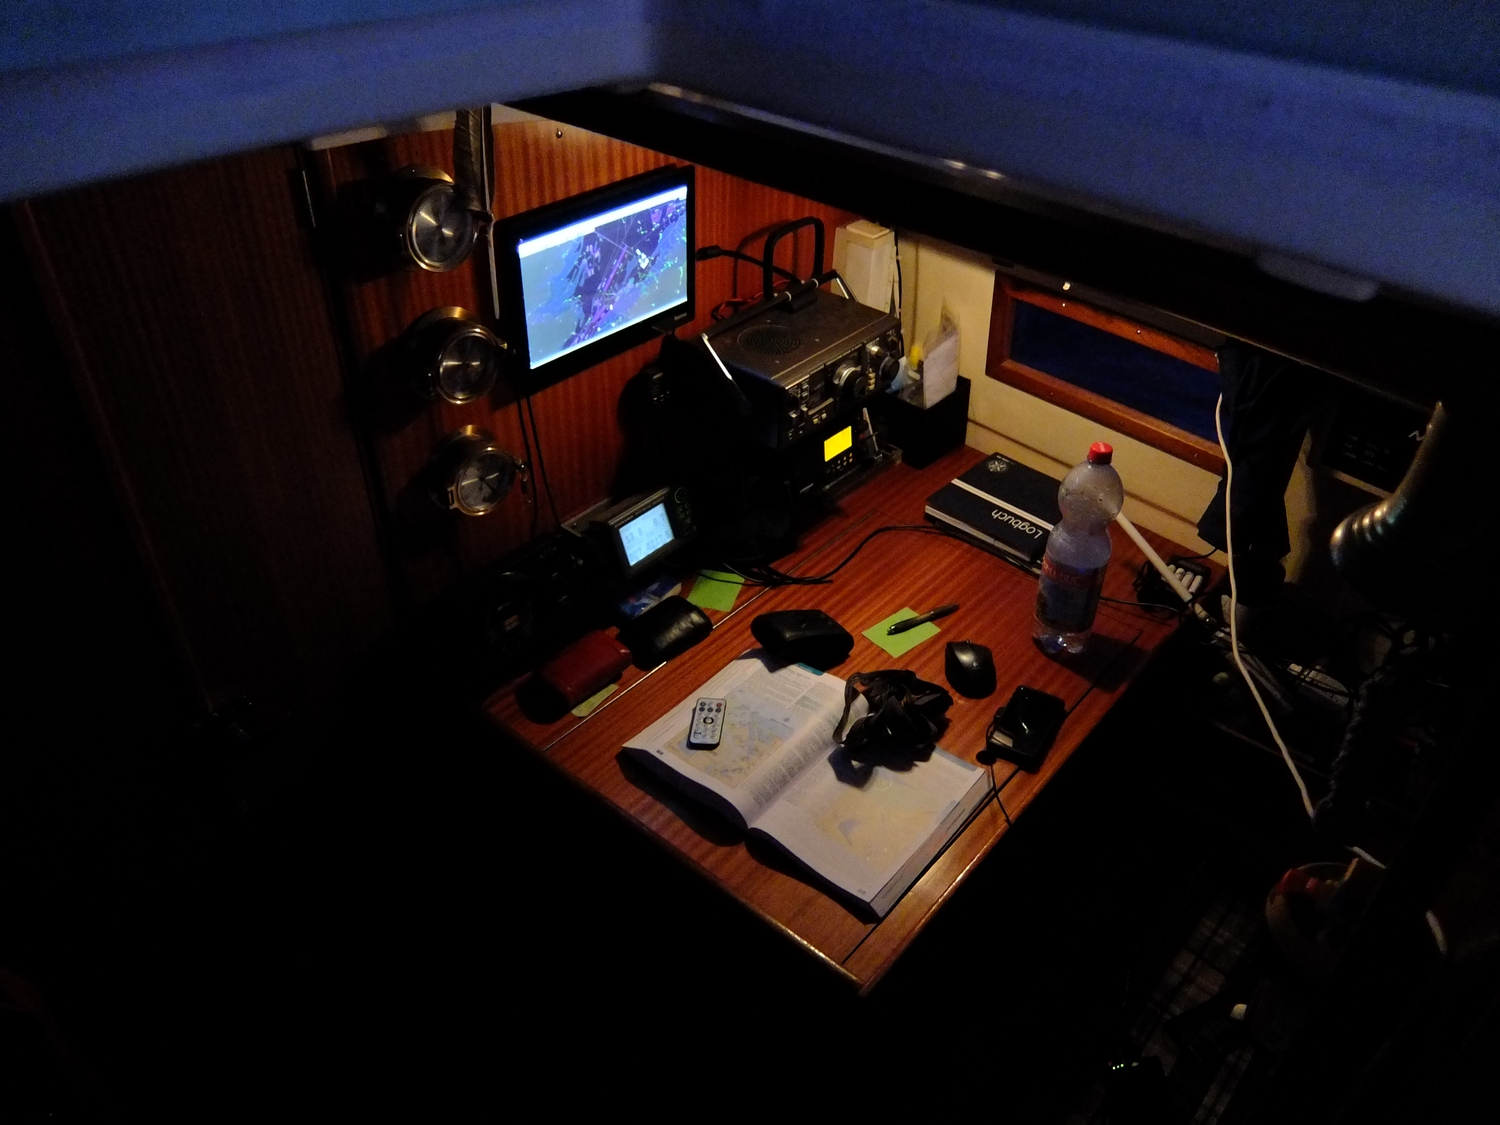 Our navigation table at night